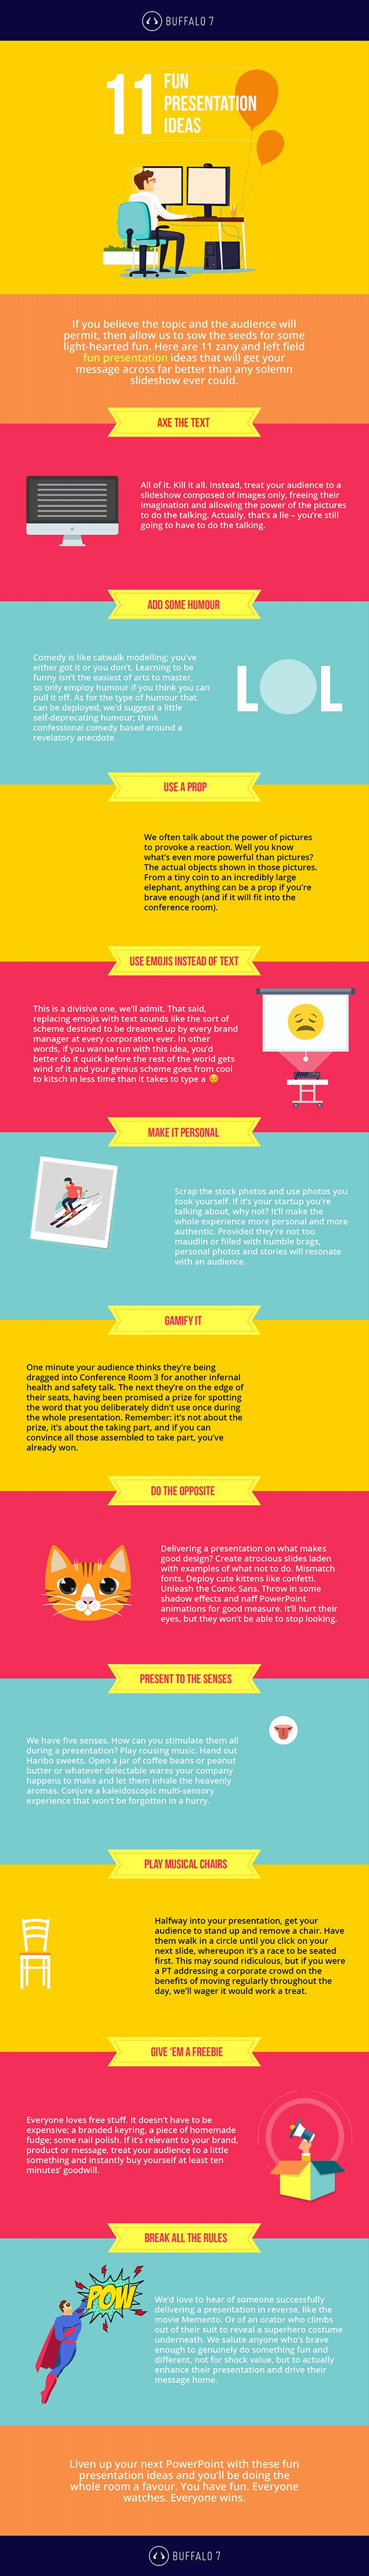 [GIFOGRAPHIC] CLICK TO PLAY  11 Fun Presentation Ideas.  Why so serious? Liven up your next PowerPoint by incorporating some of these fun presentation ideas. Your audience will thank you for it.